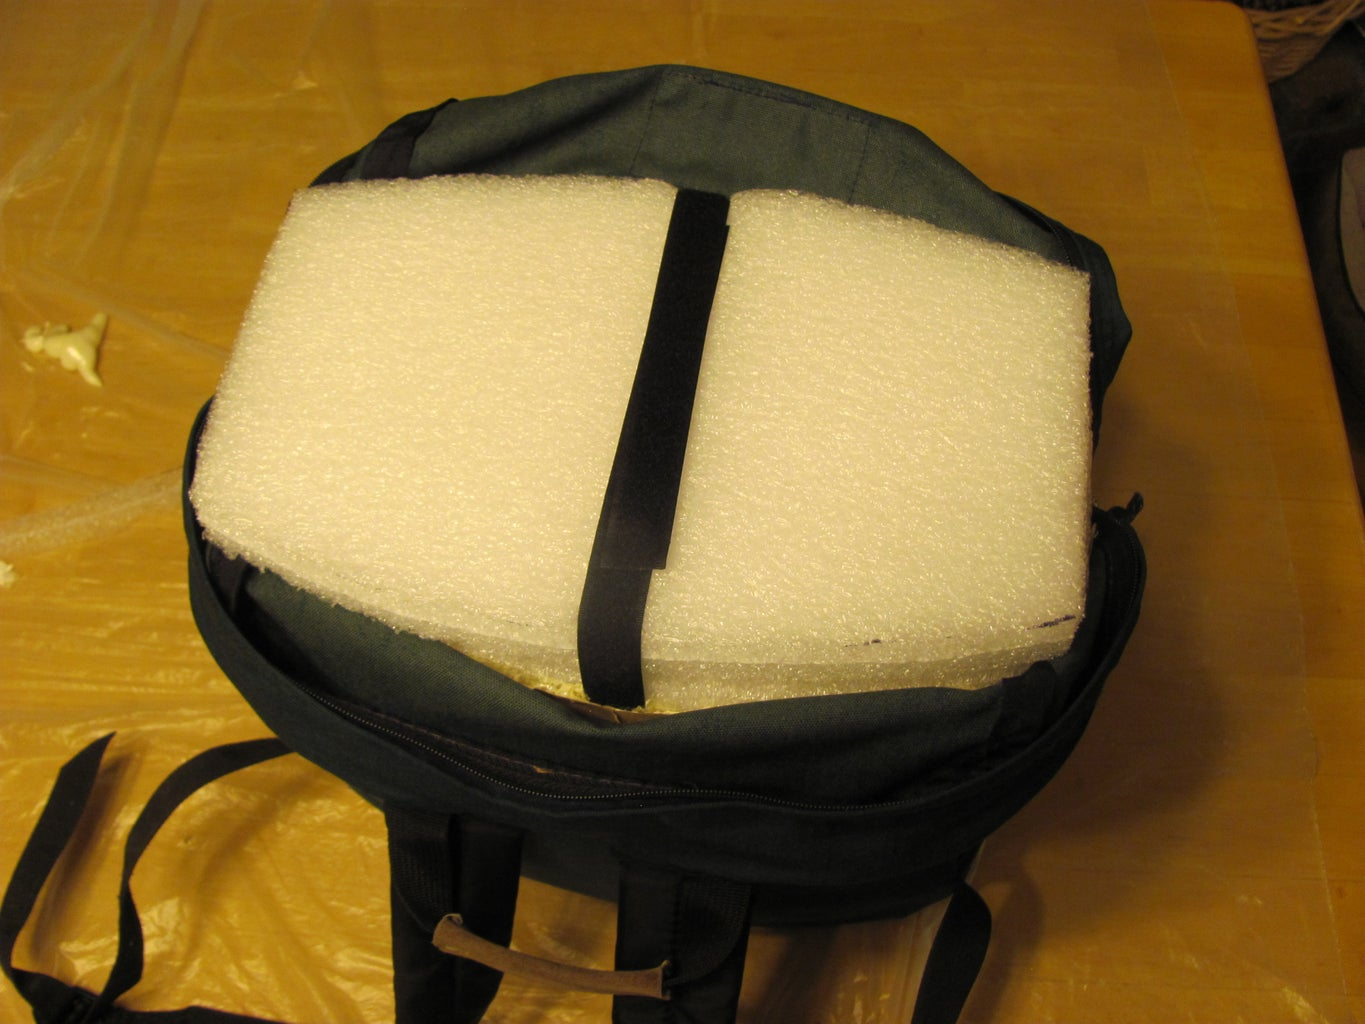 Glue the 2 Pieces of HDPE Foam Together to Make the Cooler Lid